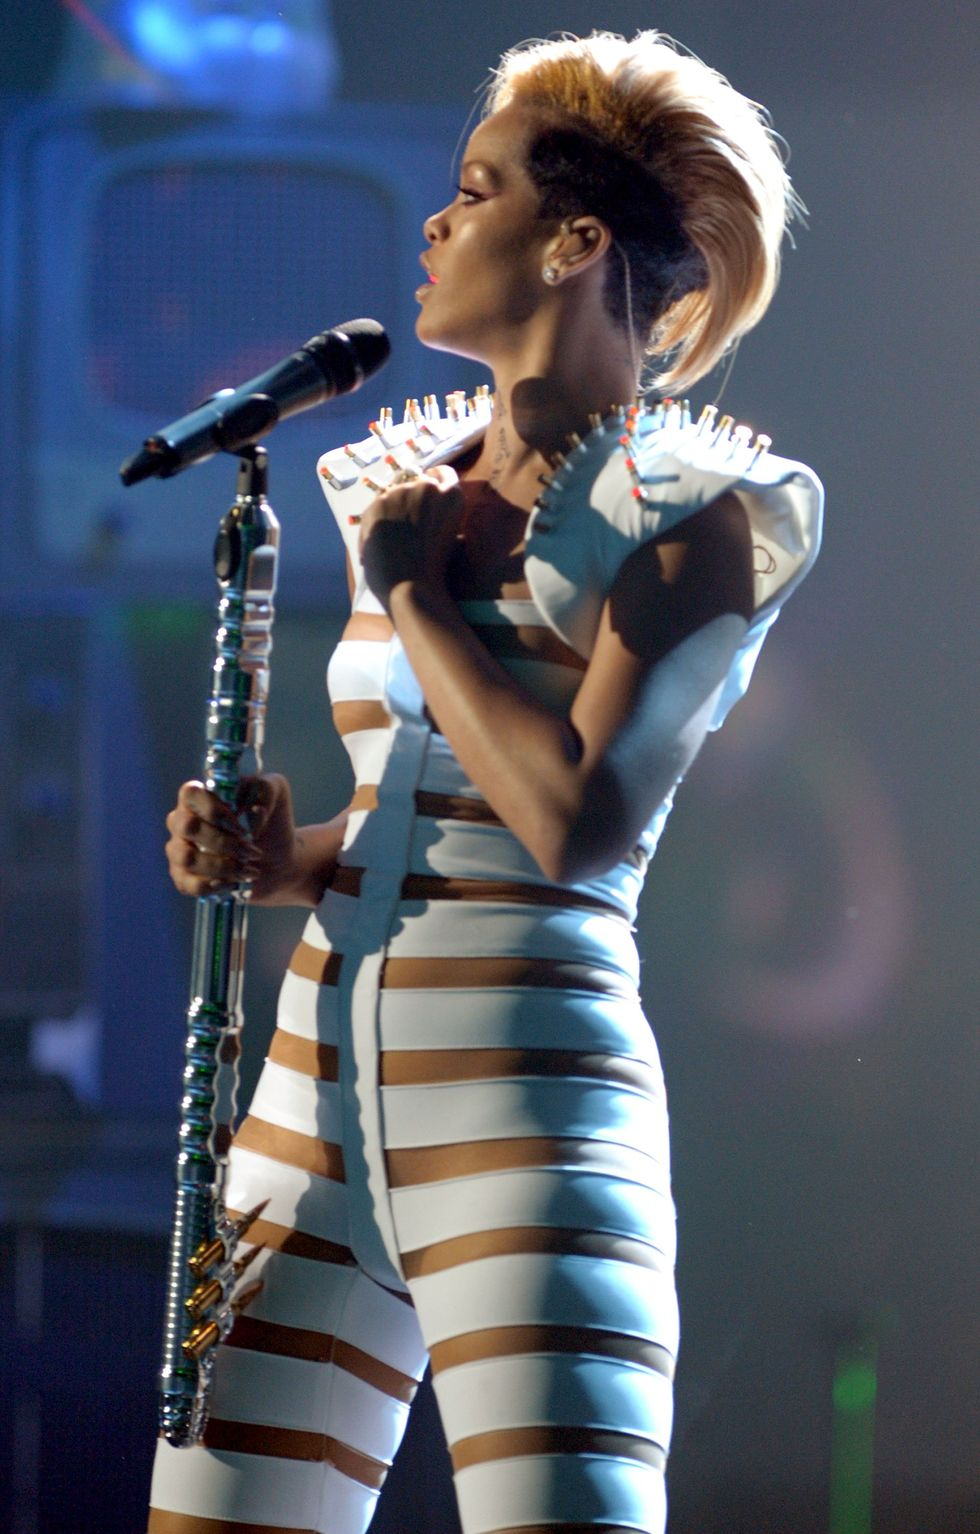 rihanna-performs-at-the-2009-american-music-awards-01